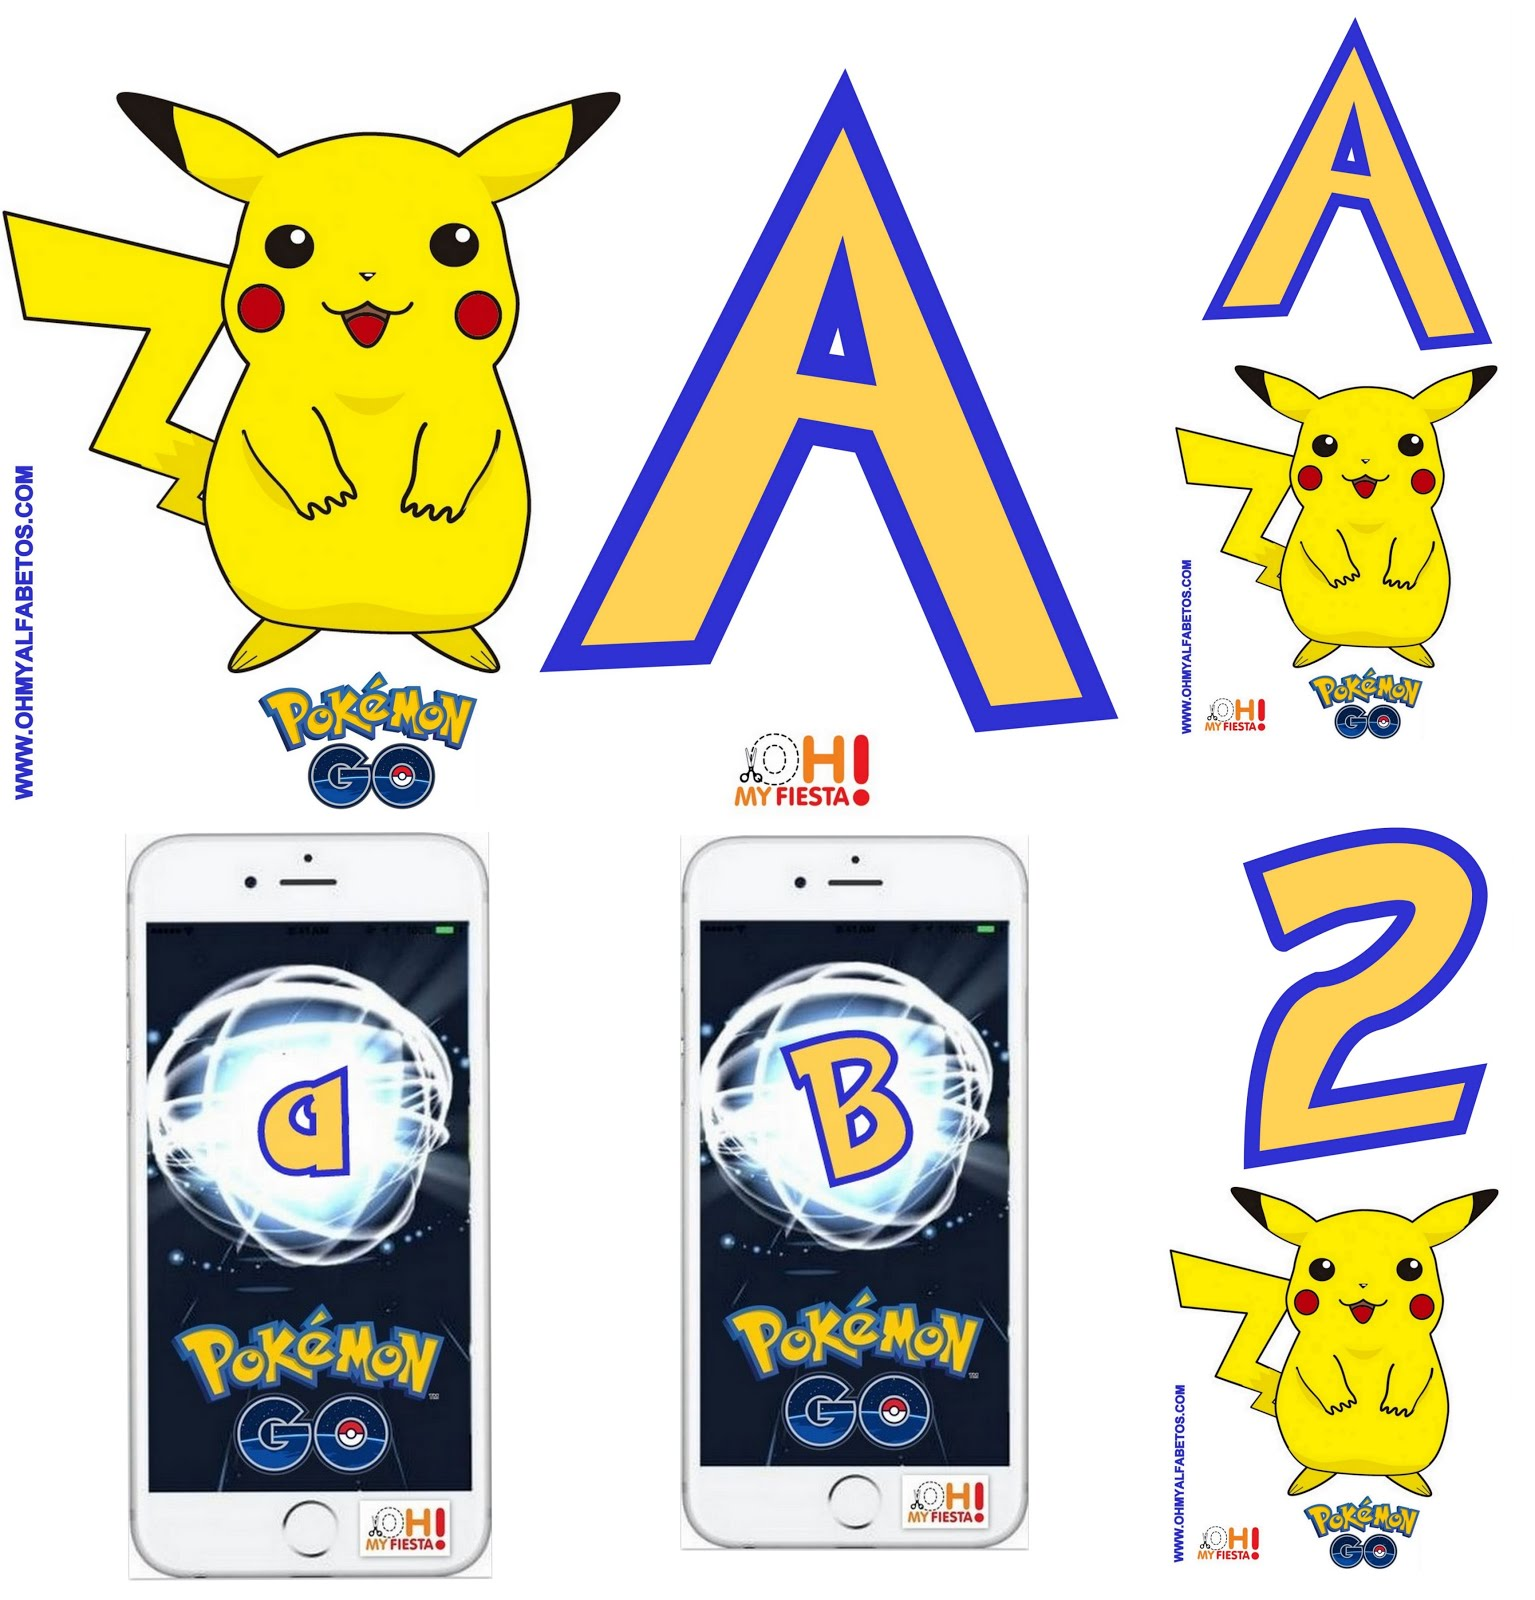 Check out our Pokemon Go Alphabets!